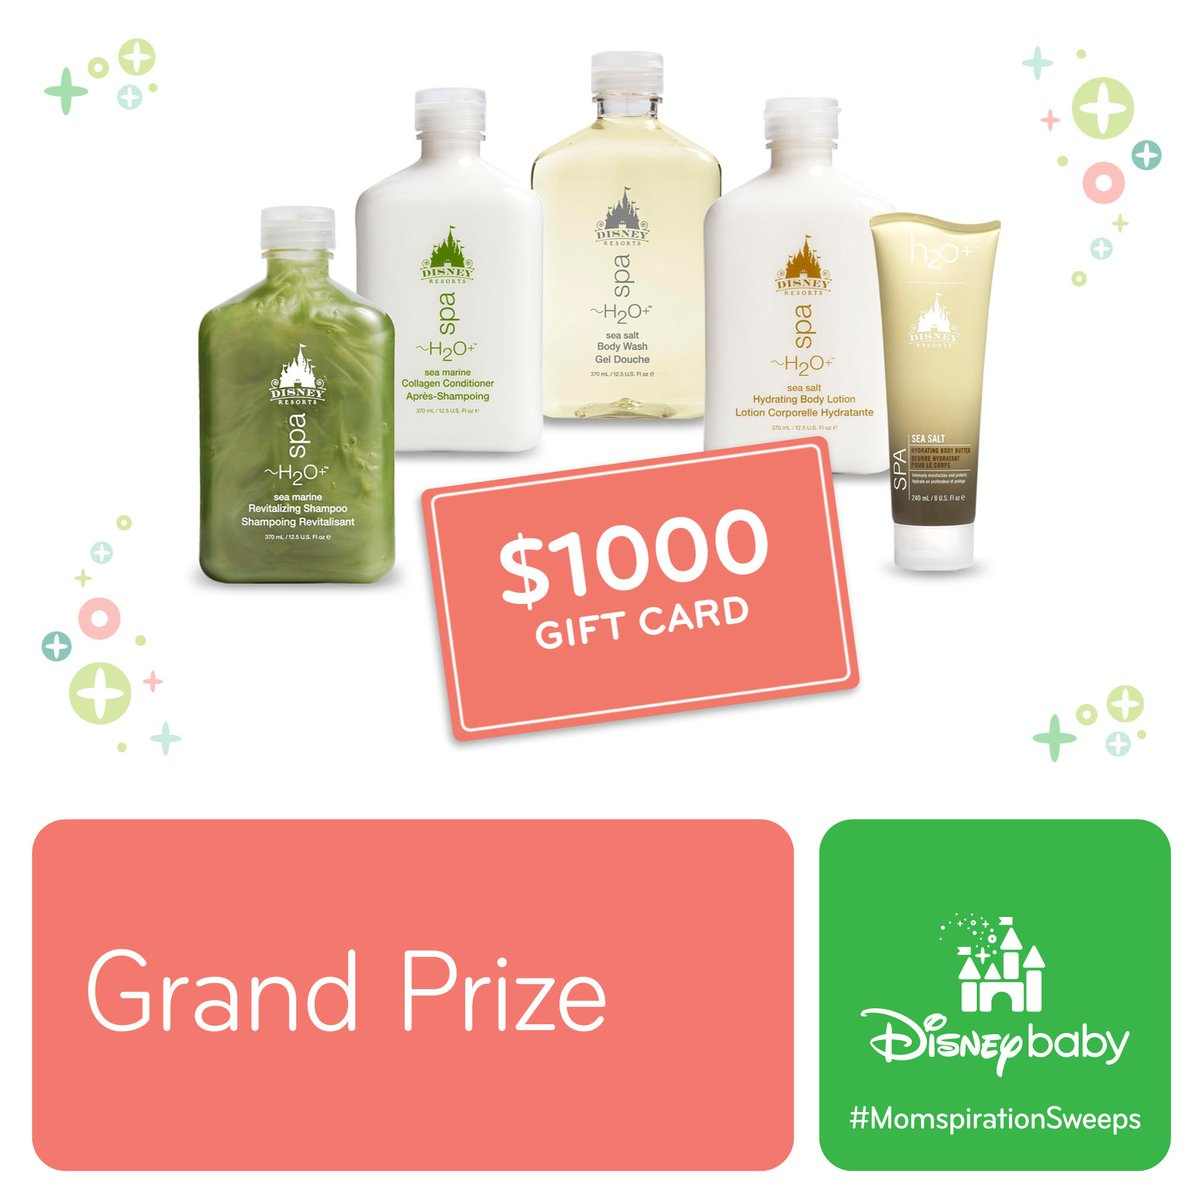 Don't miss your last few days to enter for a chance to win our #MomspirationSweeps Grand Prize! Follow & RT http://t.co/irBJdTLG4Q